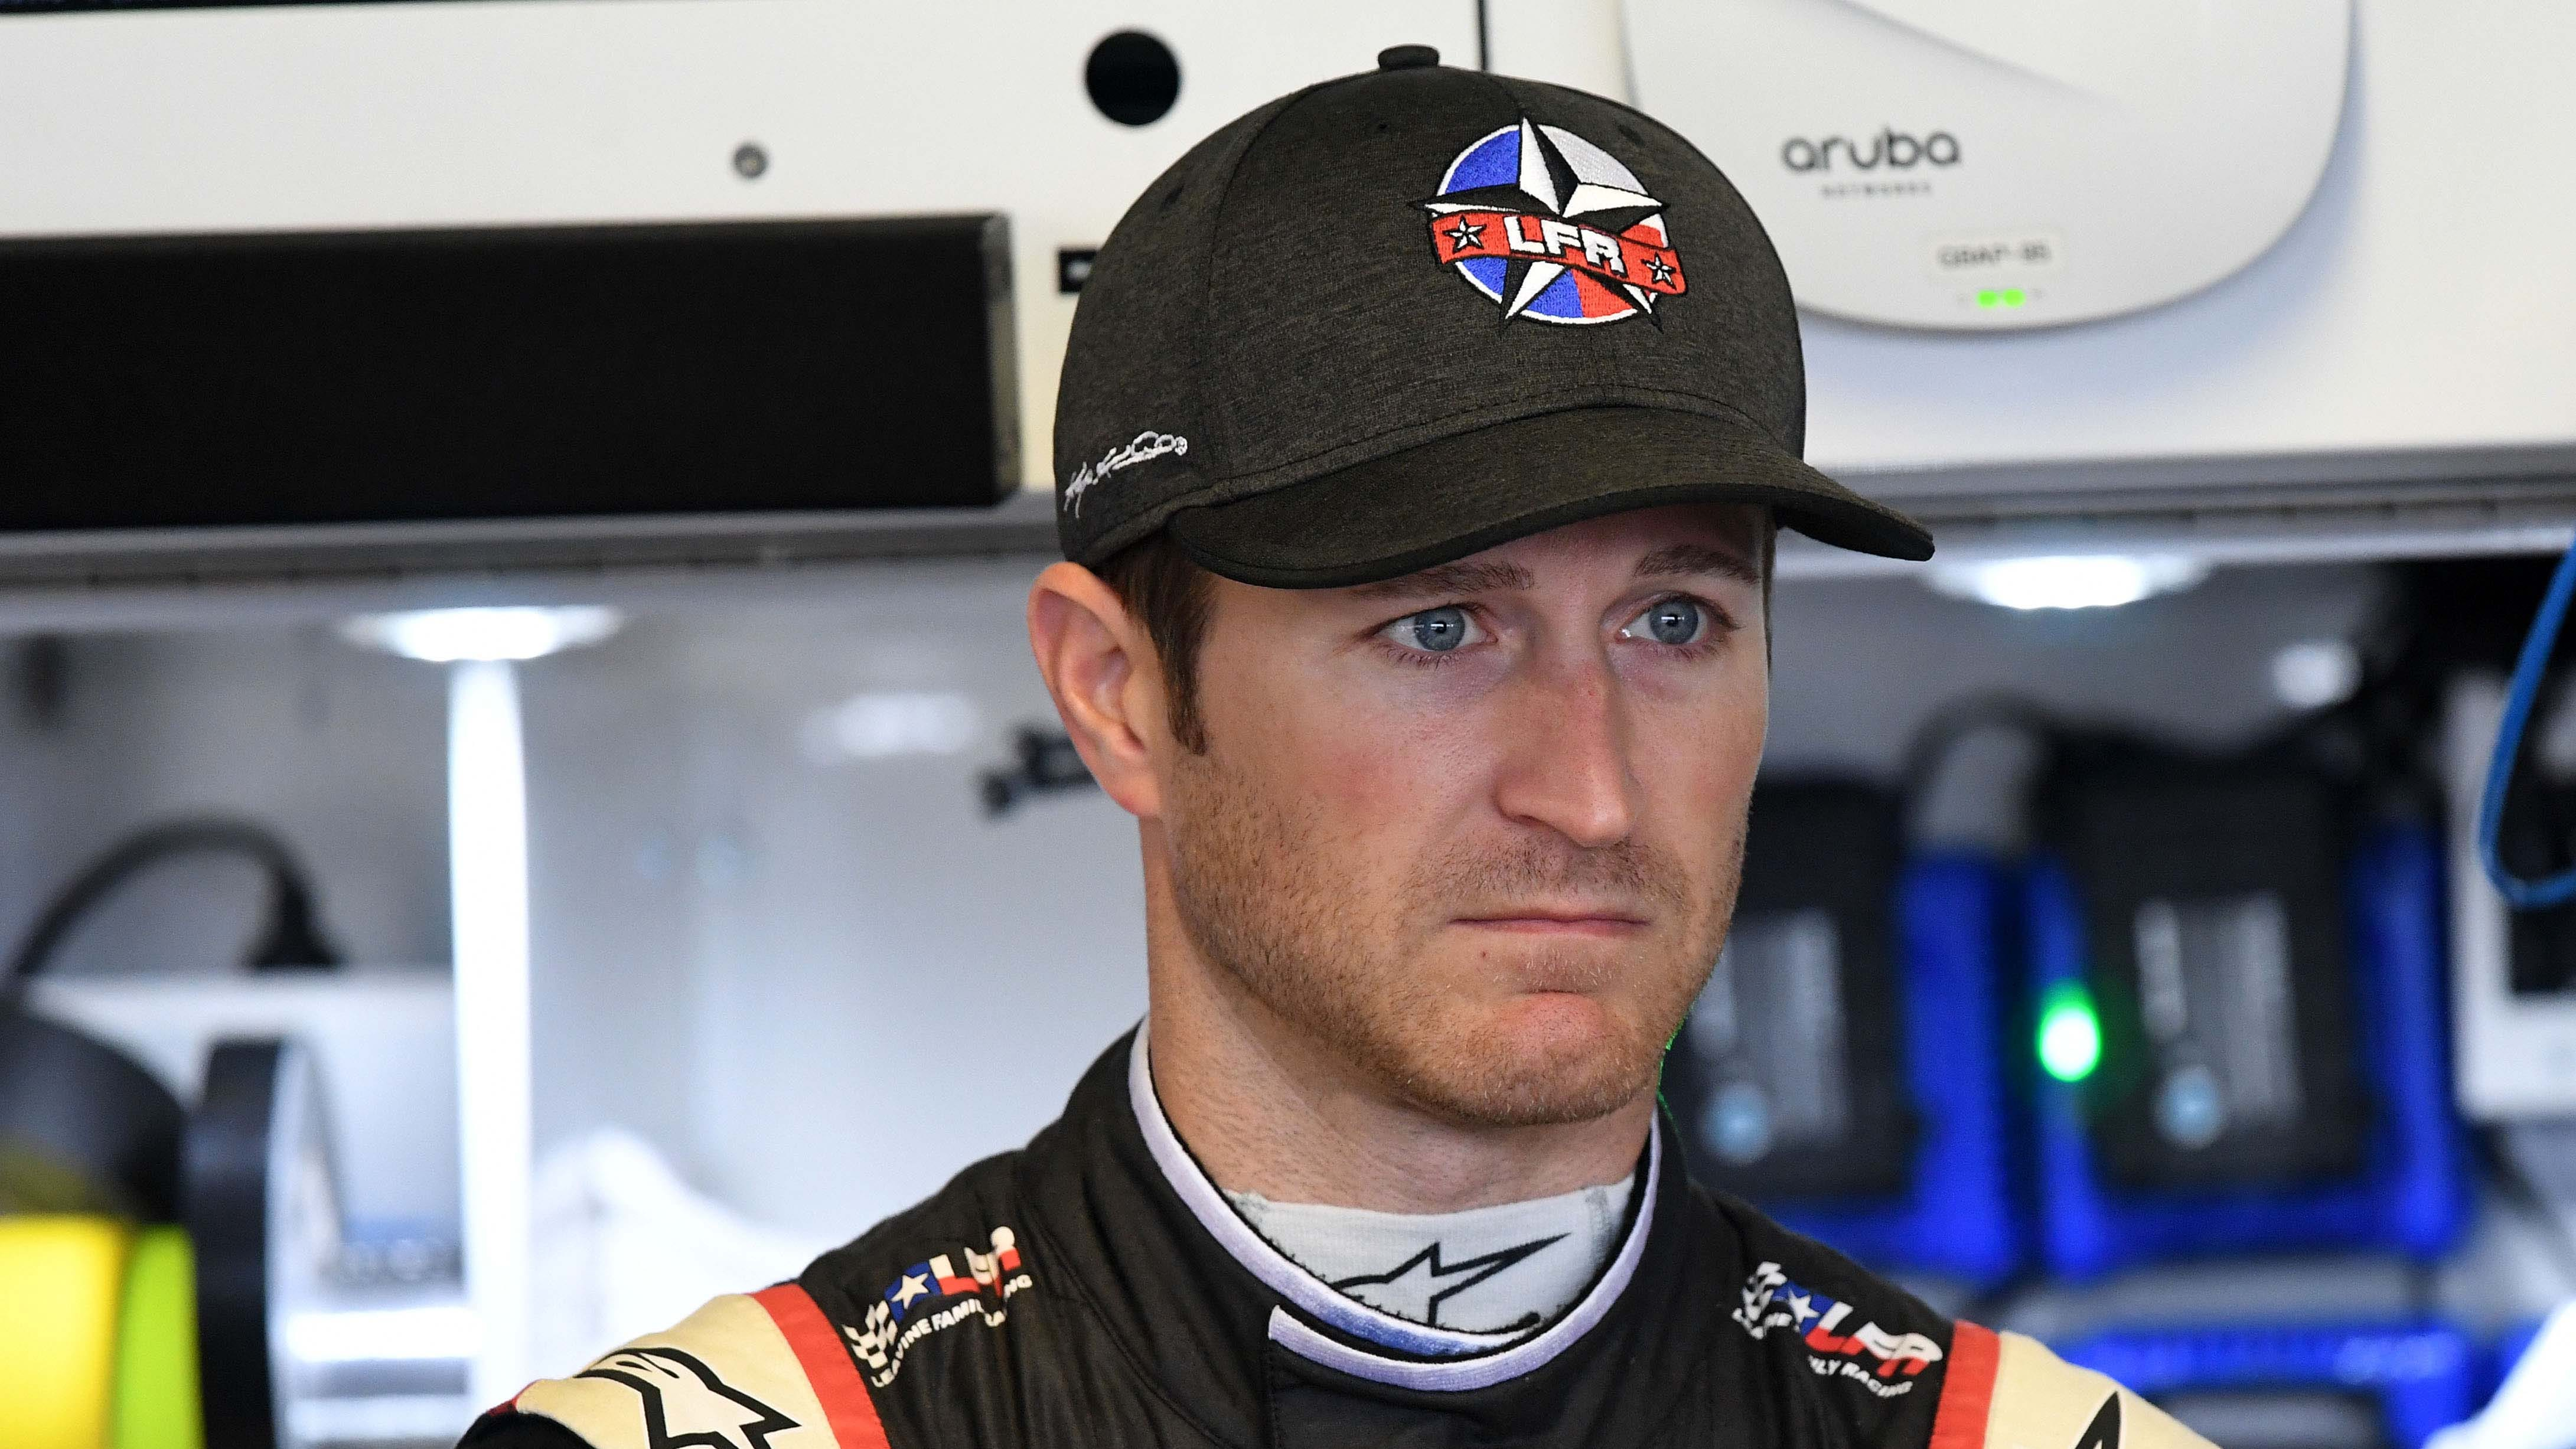 NASCAR drivers bid unexpected early farewell to Kasey Kahne amid health issues